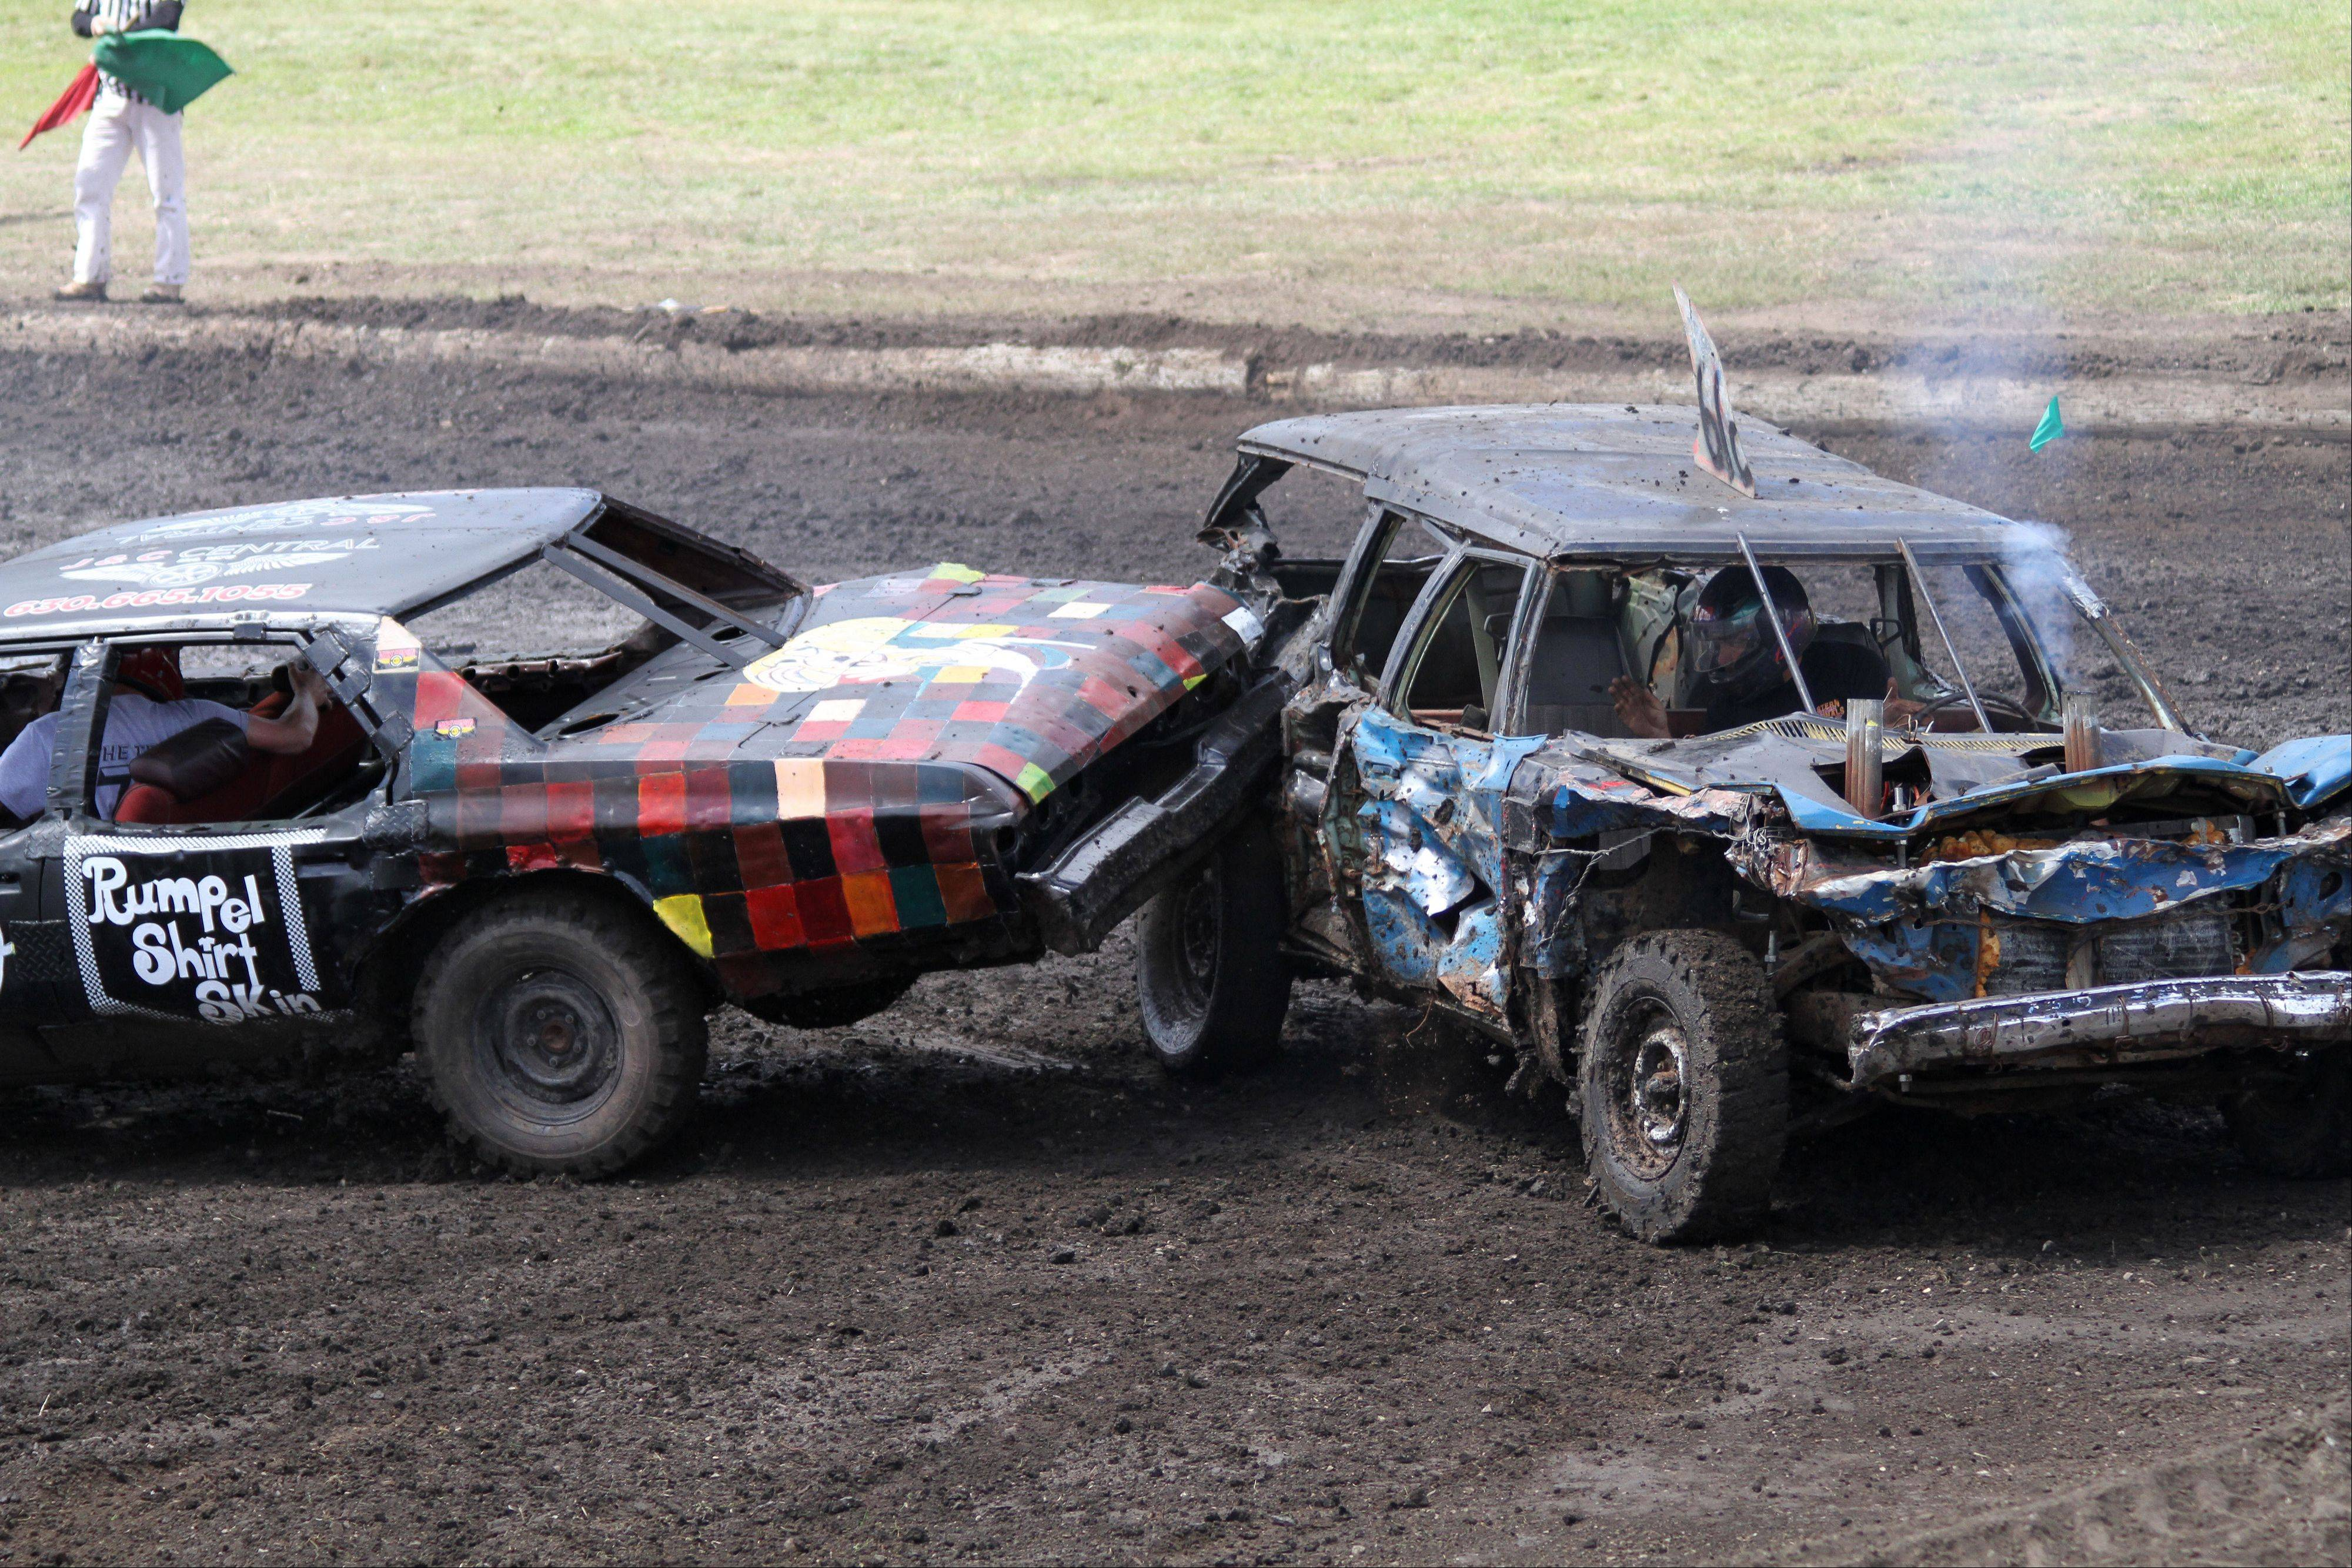 Two cars collide at the demolition derby at the 2013 DuPage County Fair on Sunday, July 28, 2013.